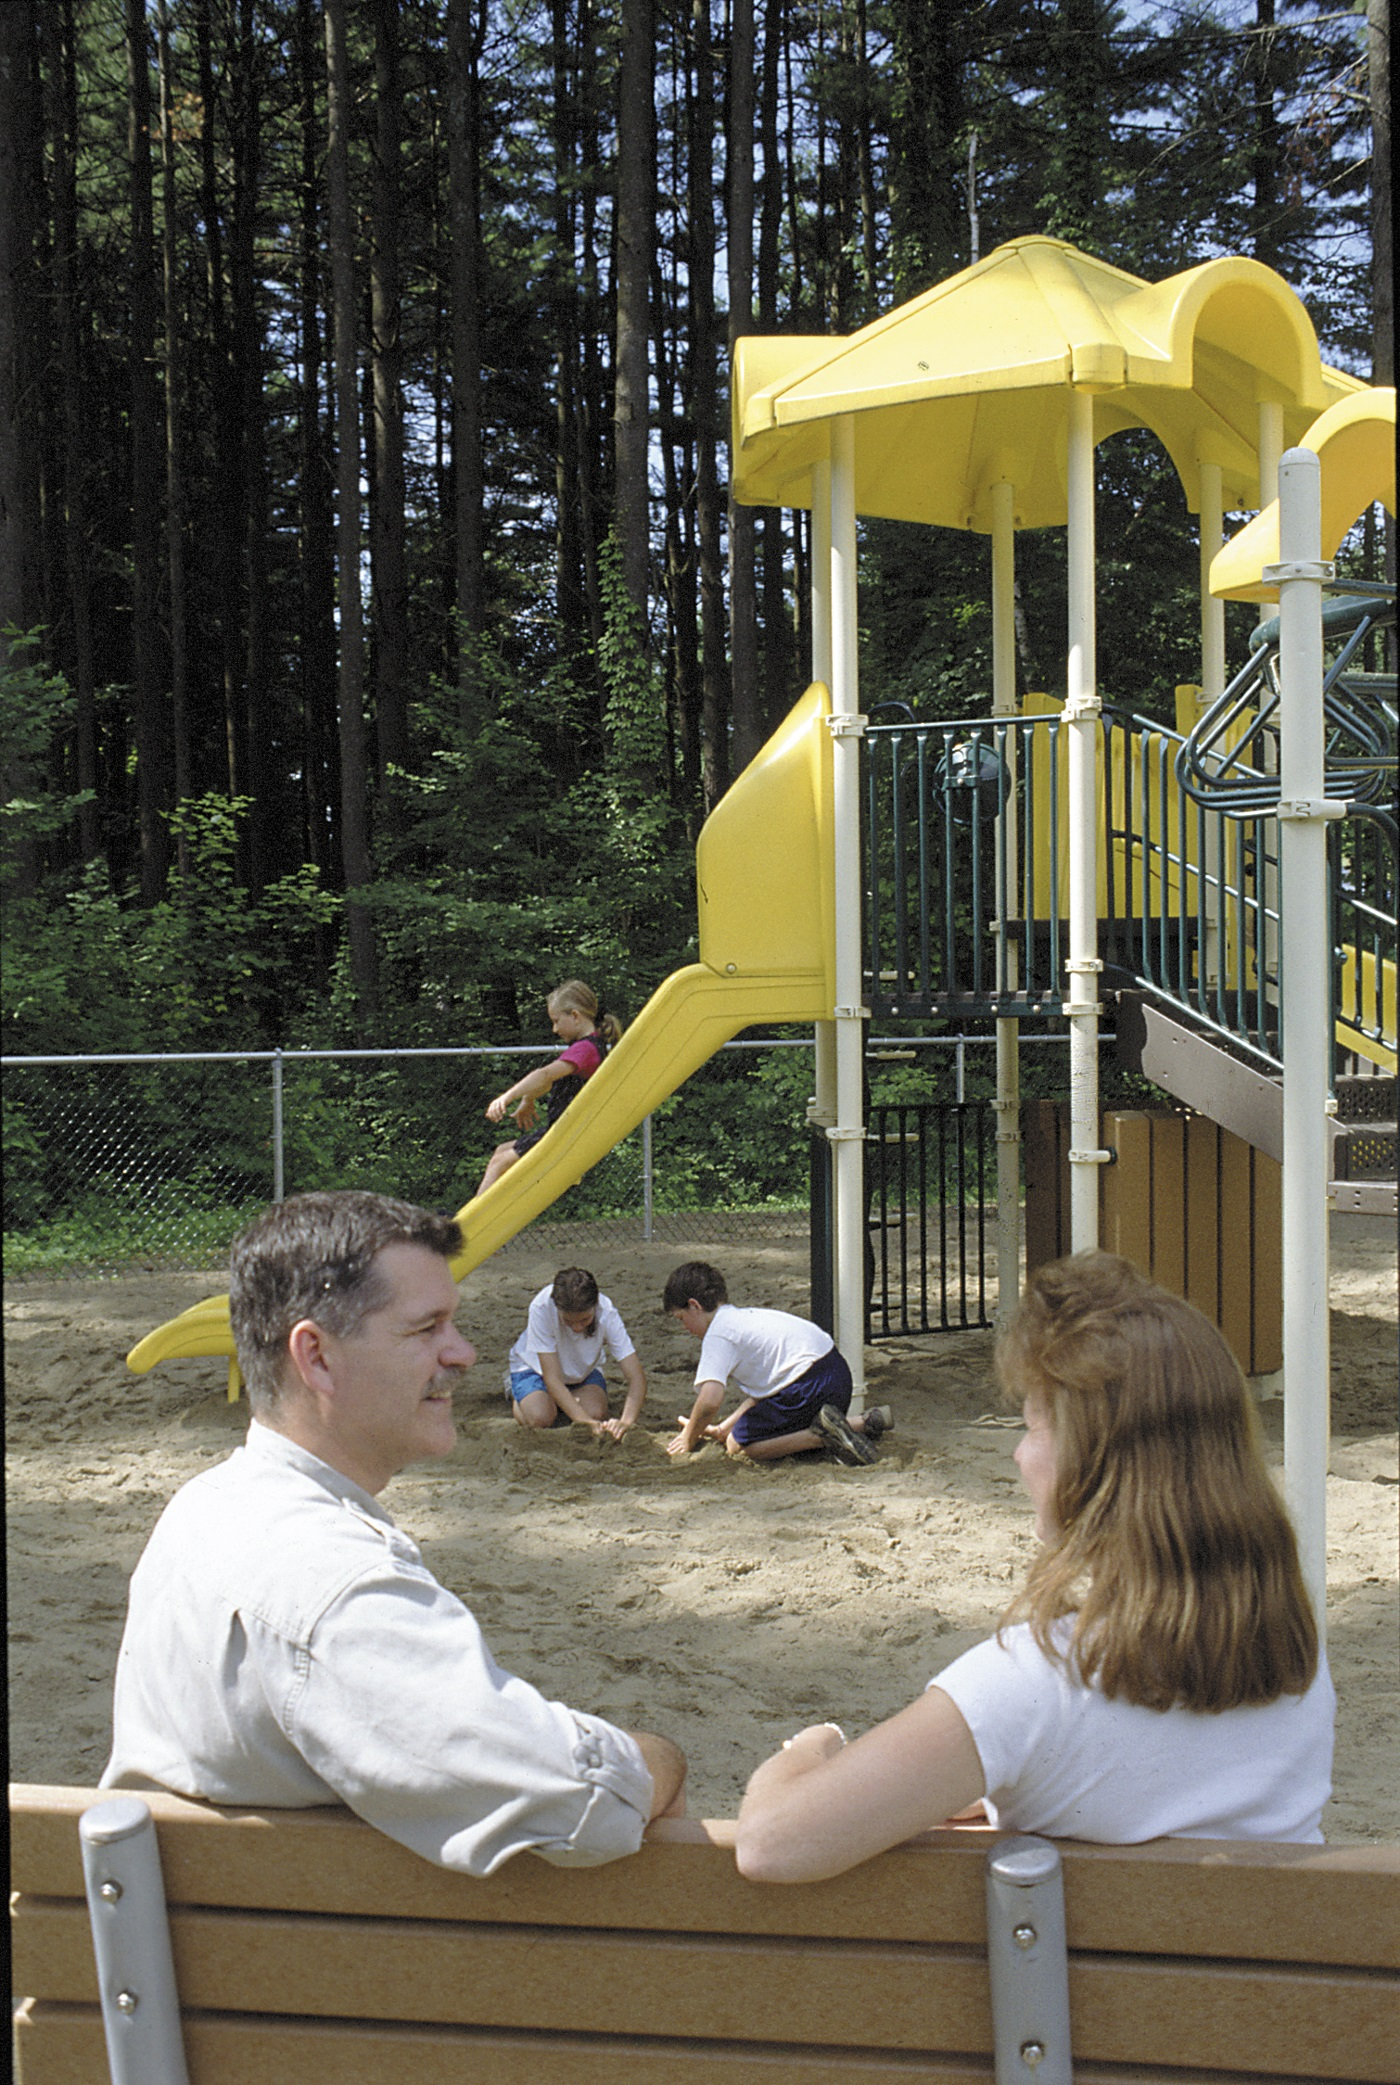 East end playground with yellow slide